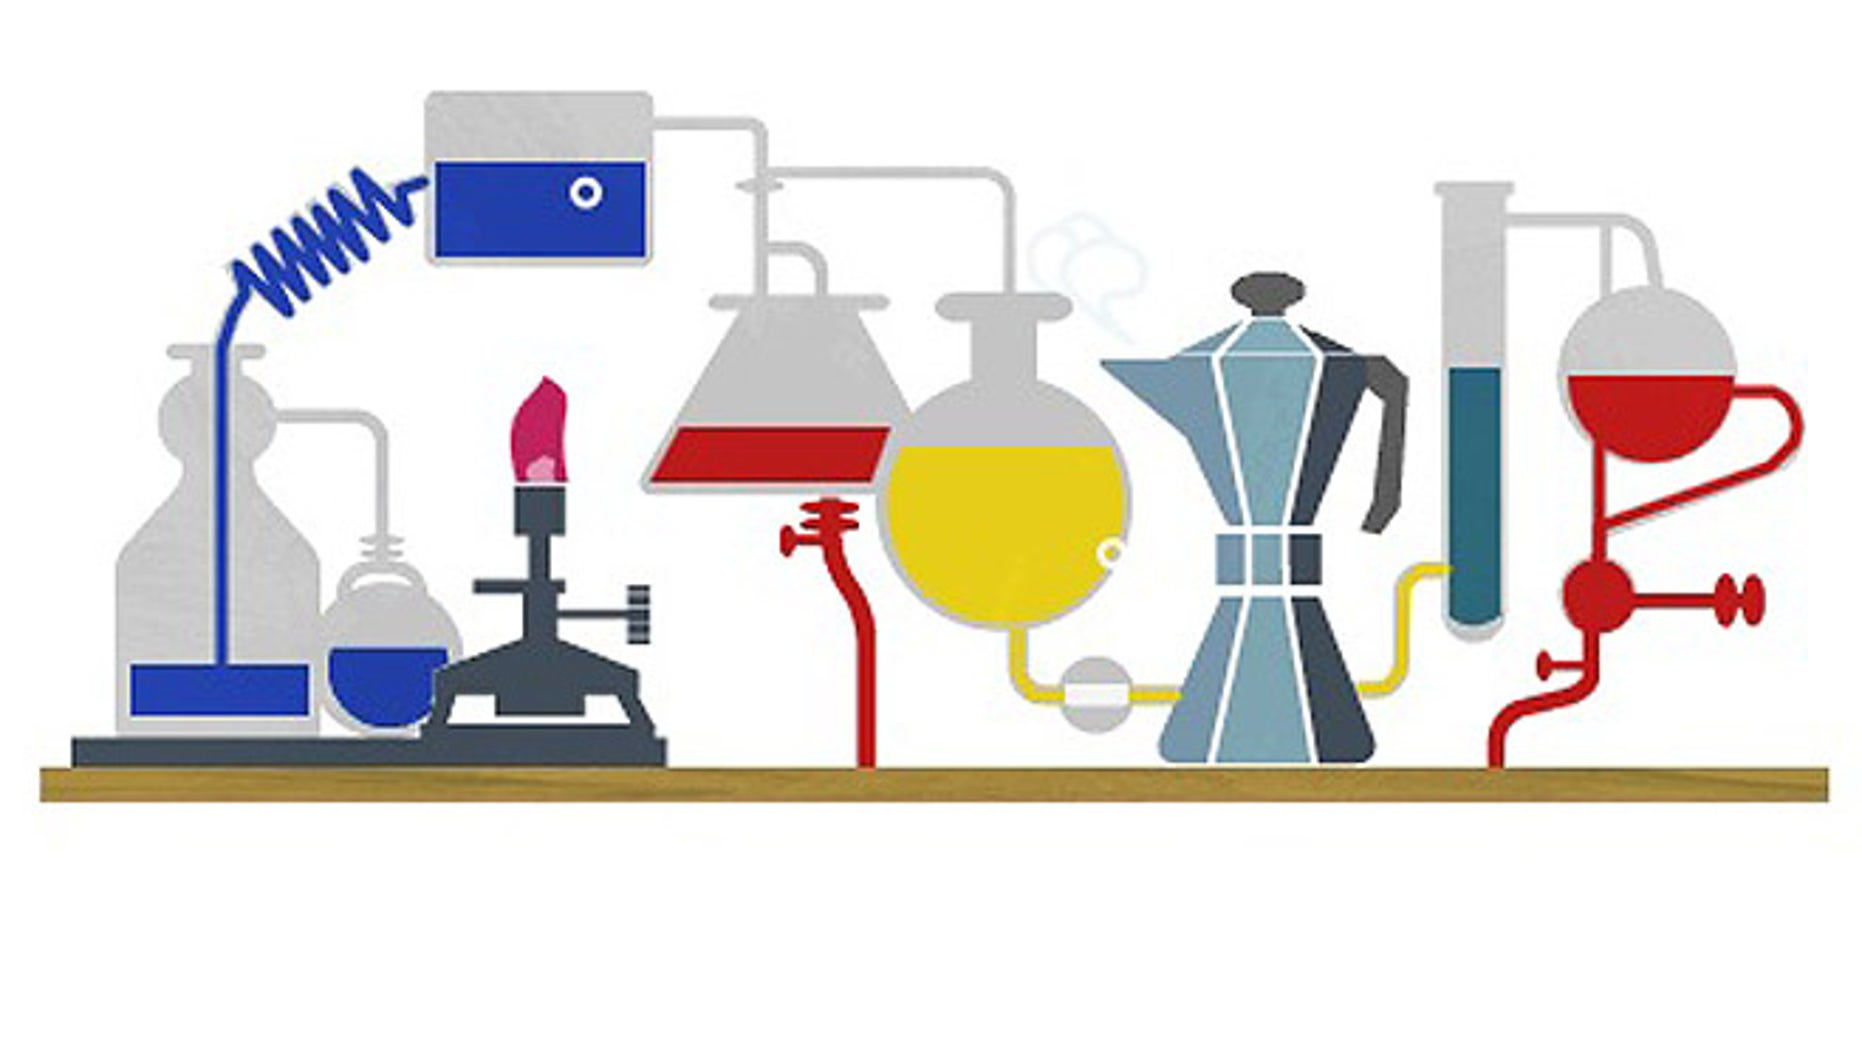 A Google doodle transforms the familiar logo into a science lab replete with beakers, vials ... and a steaming coffee pot.